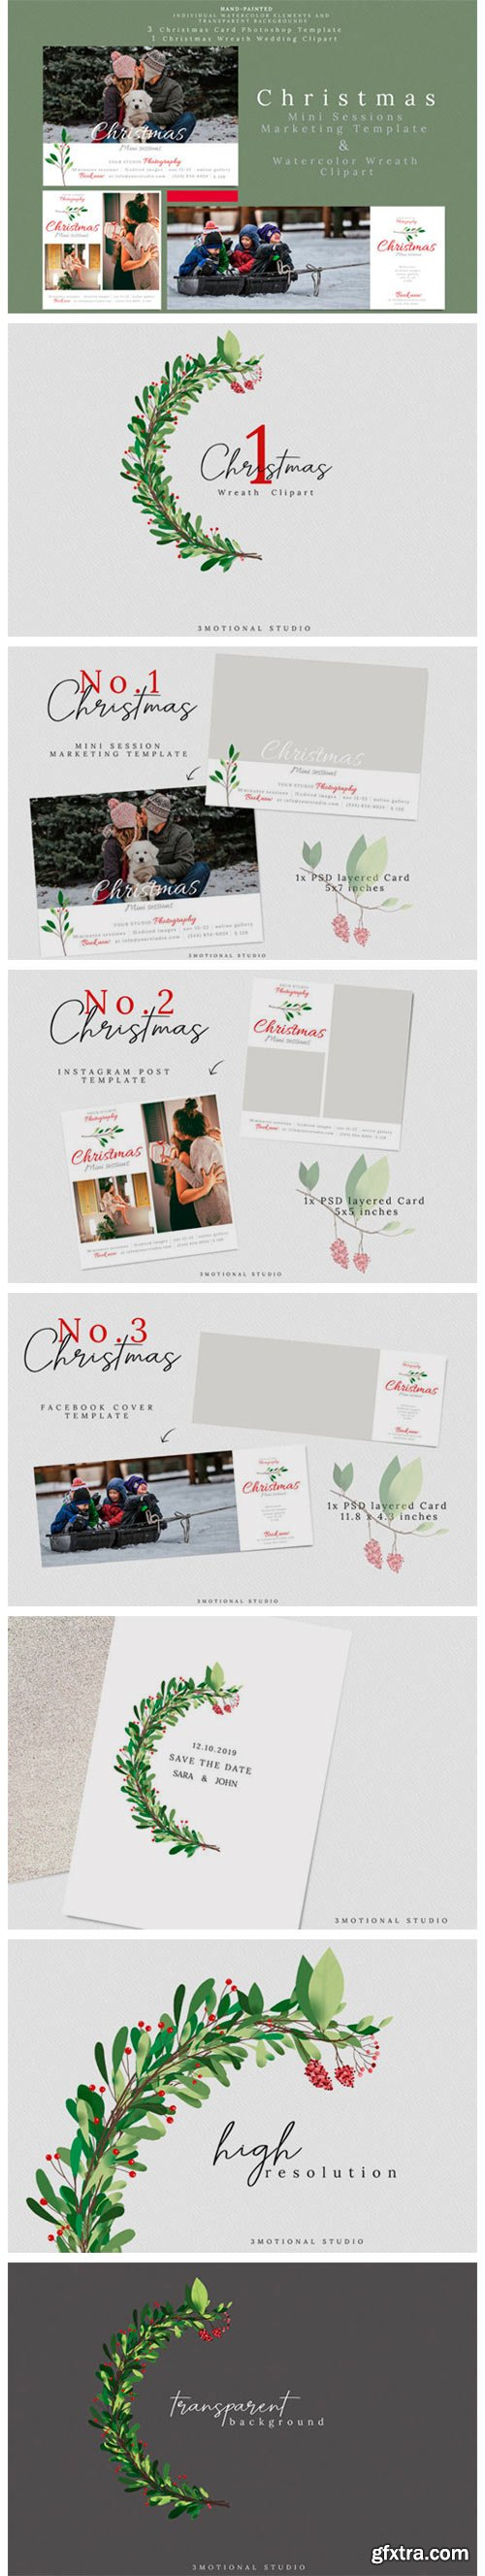 Holiday Mini Sessions Marketing Template 2217936